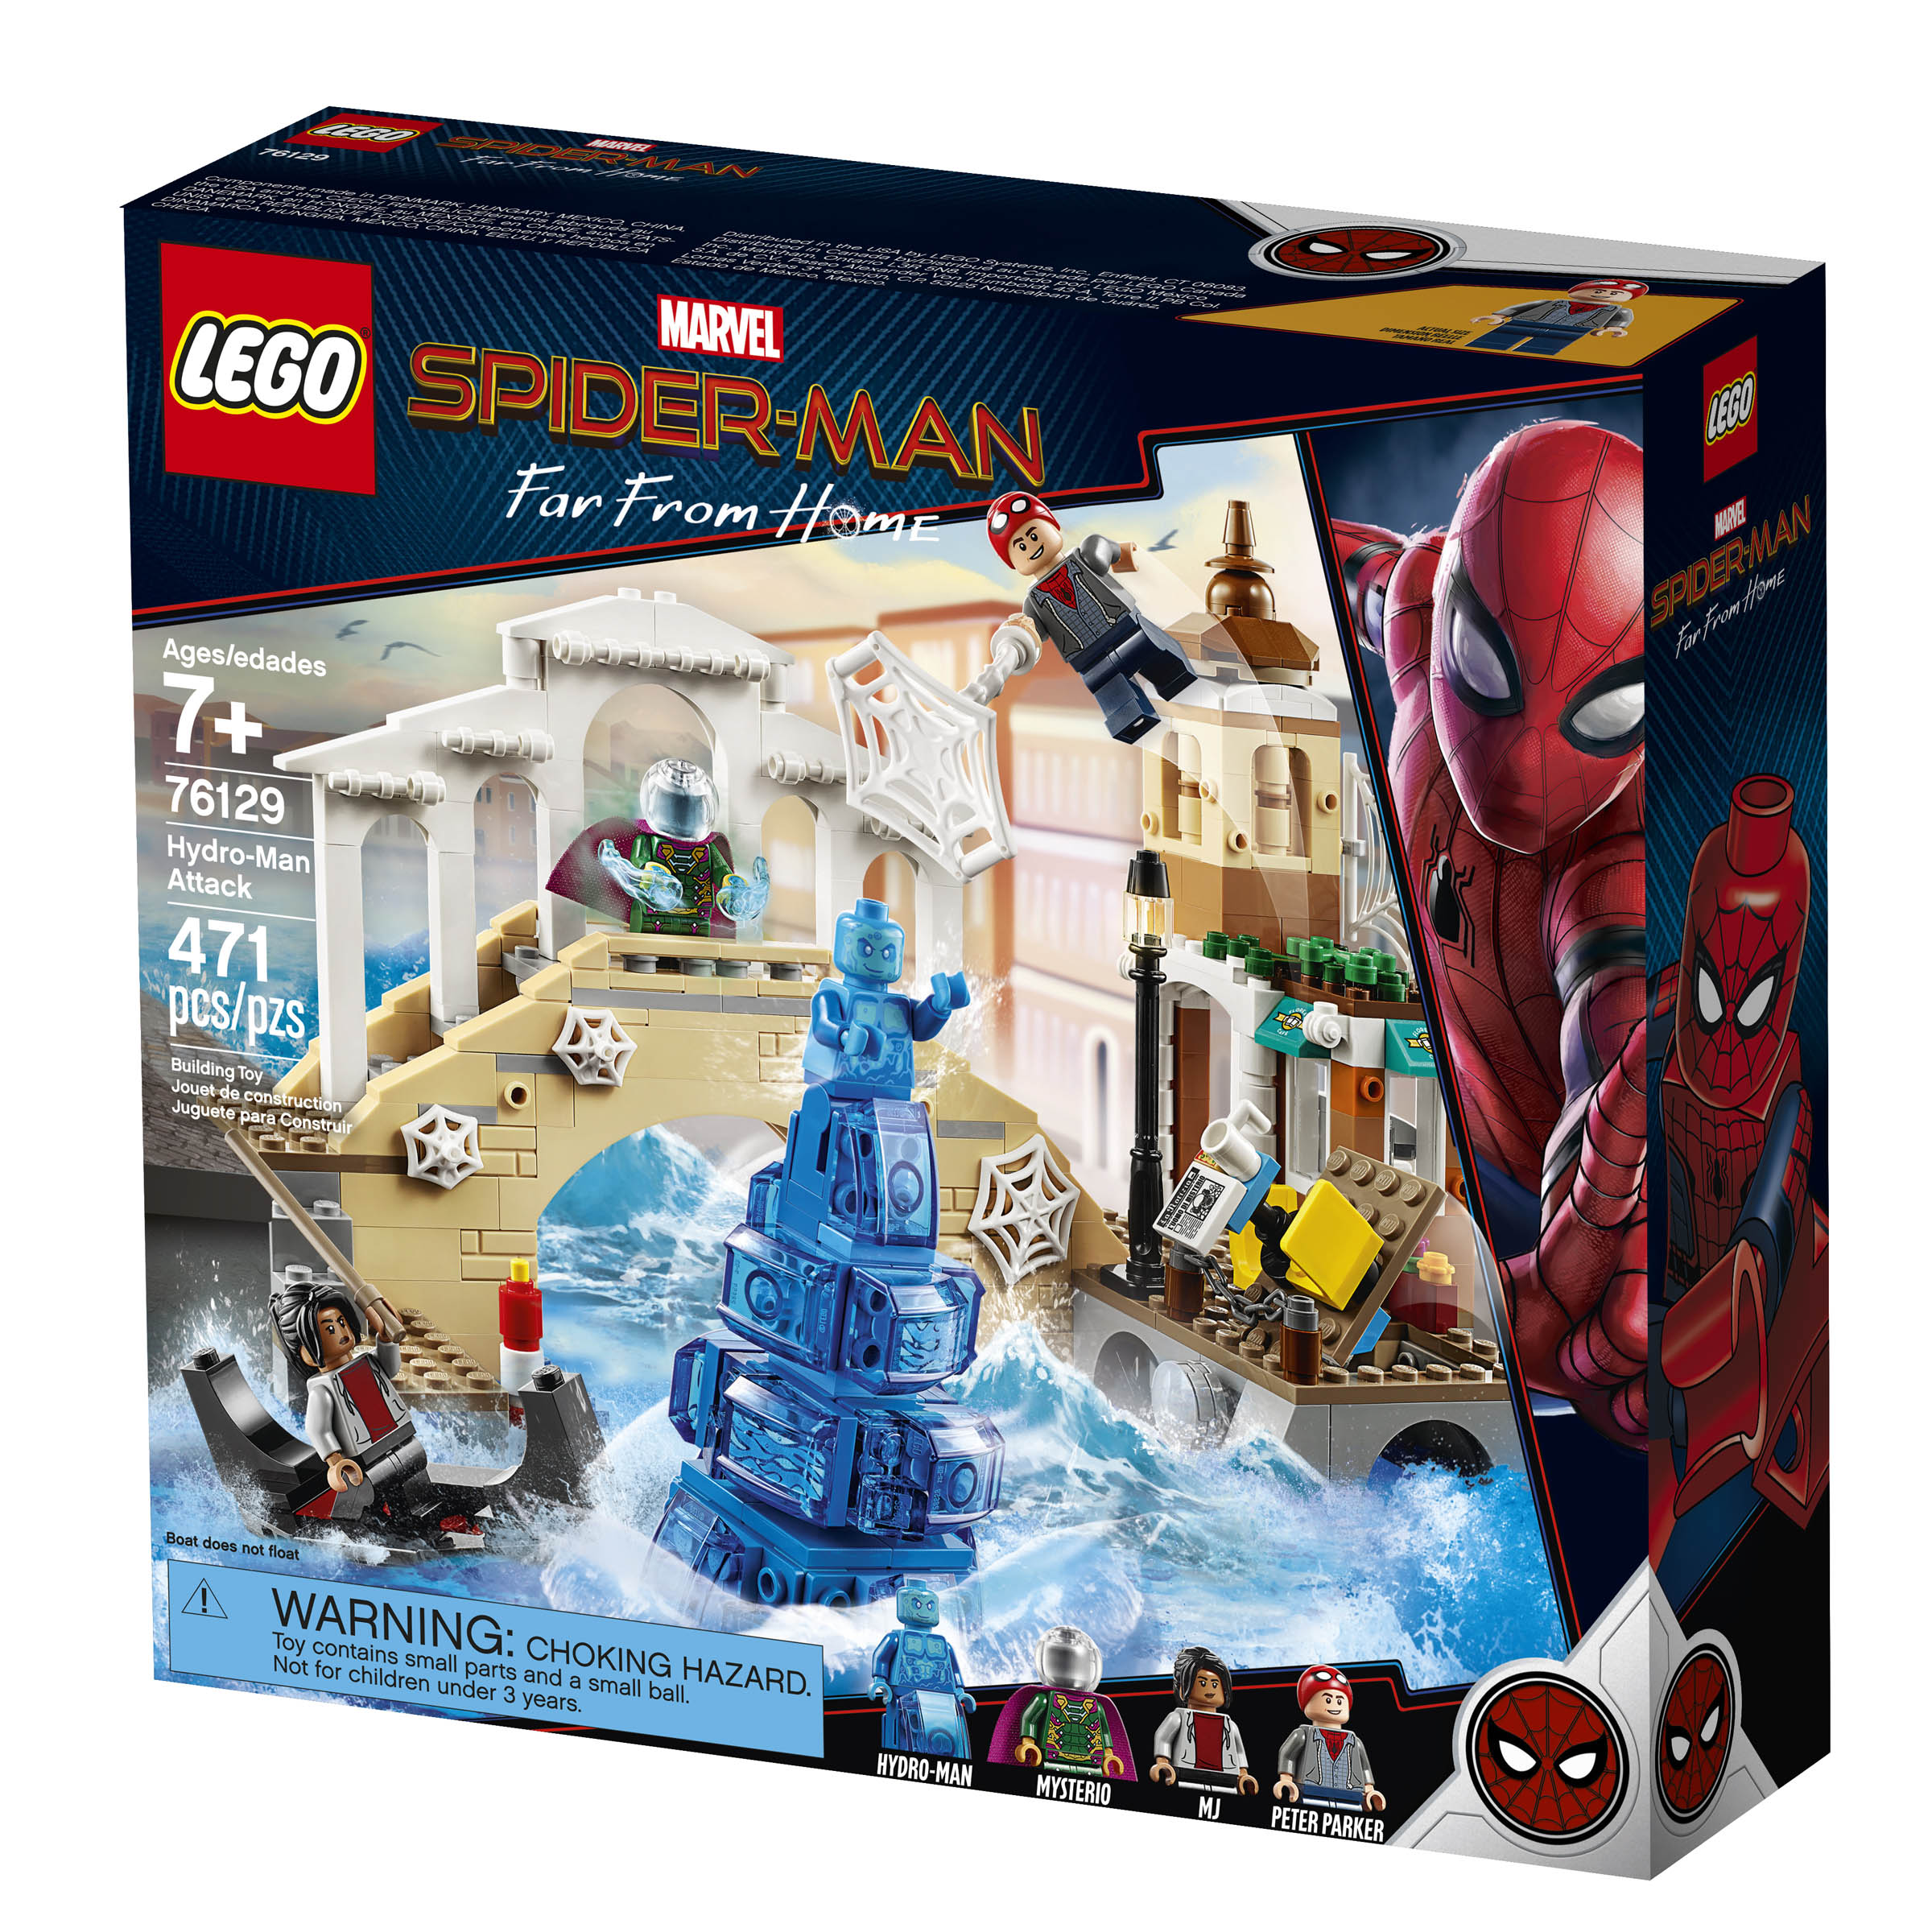 New Spider-Man: Far From Home LEGO Sets Revealed - FBTB